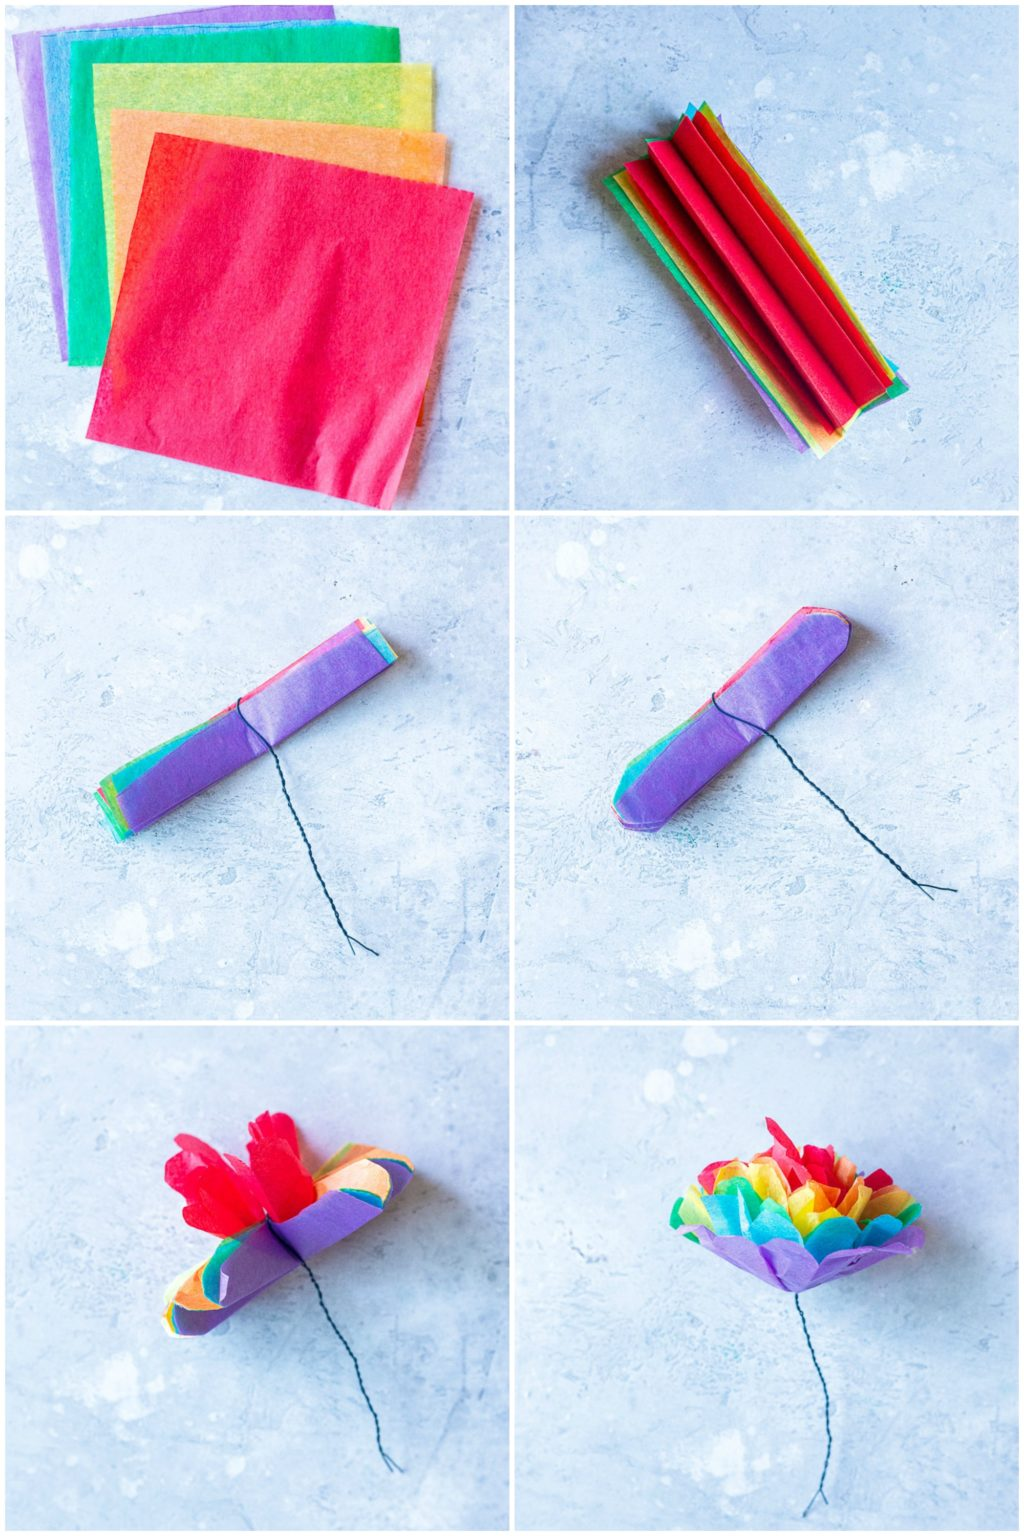 Showing how to make tissue paper flowers in 6 easy steps